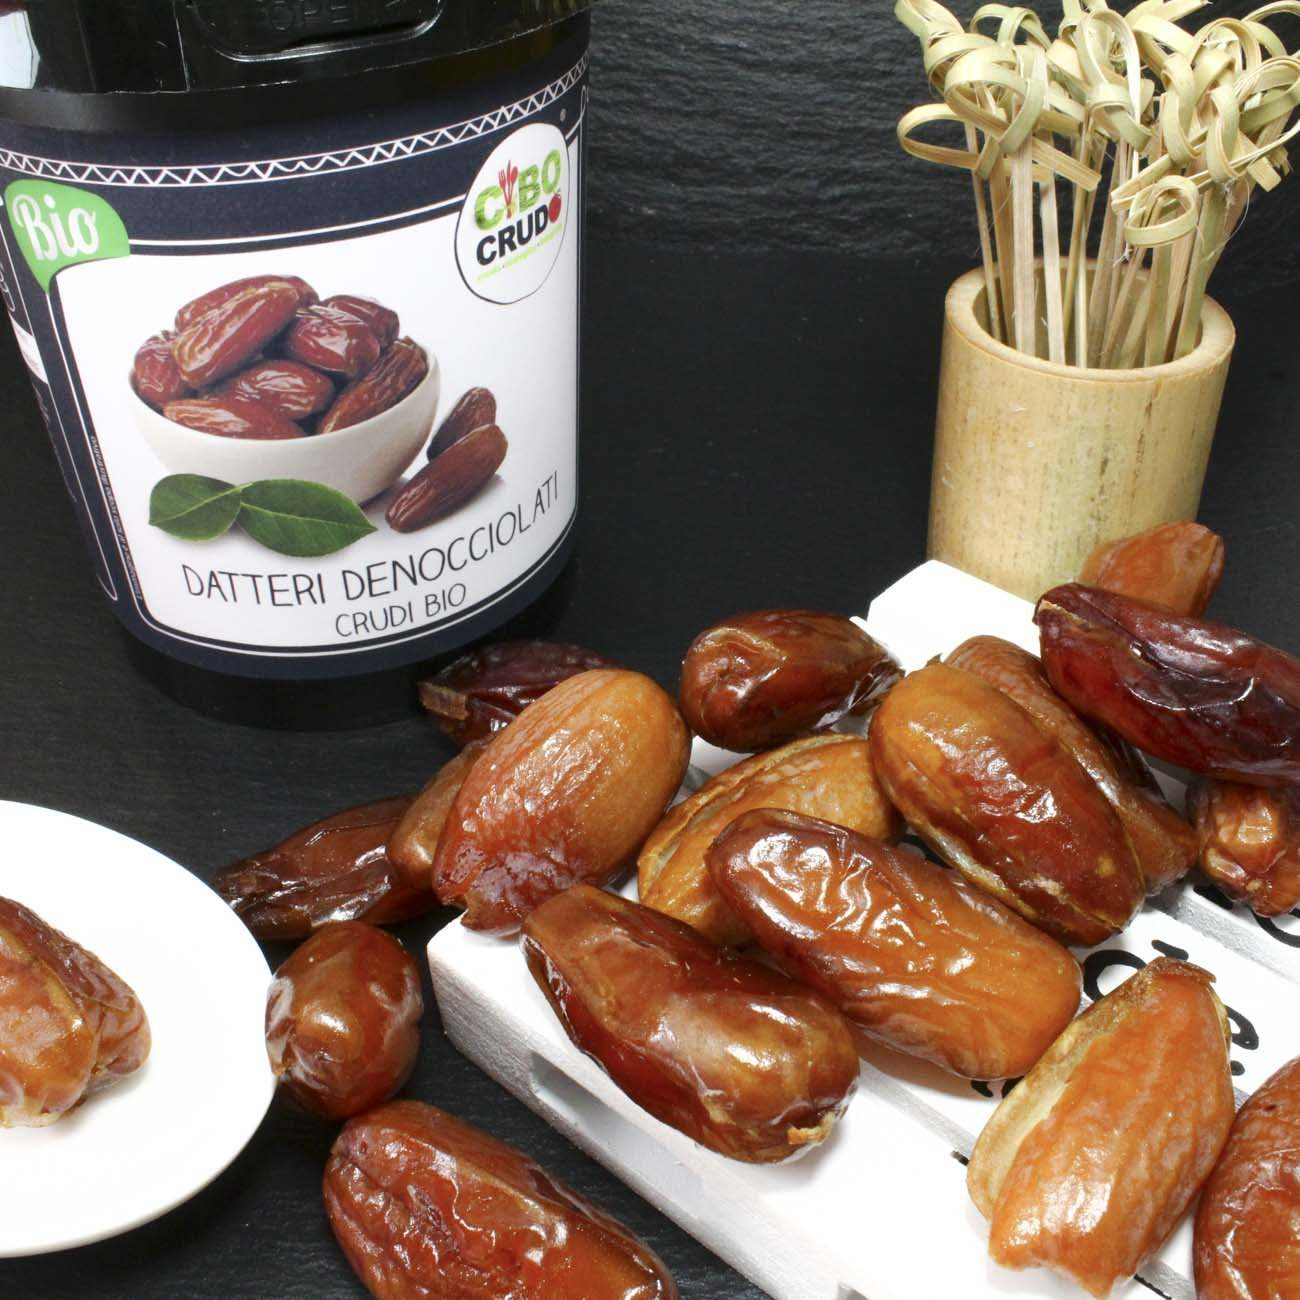 Datteri<br/>Denocciolati Crudi Bio - Pitted Dates Raw Organic - 250g